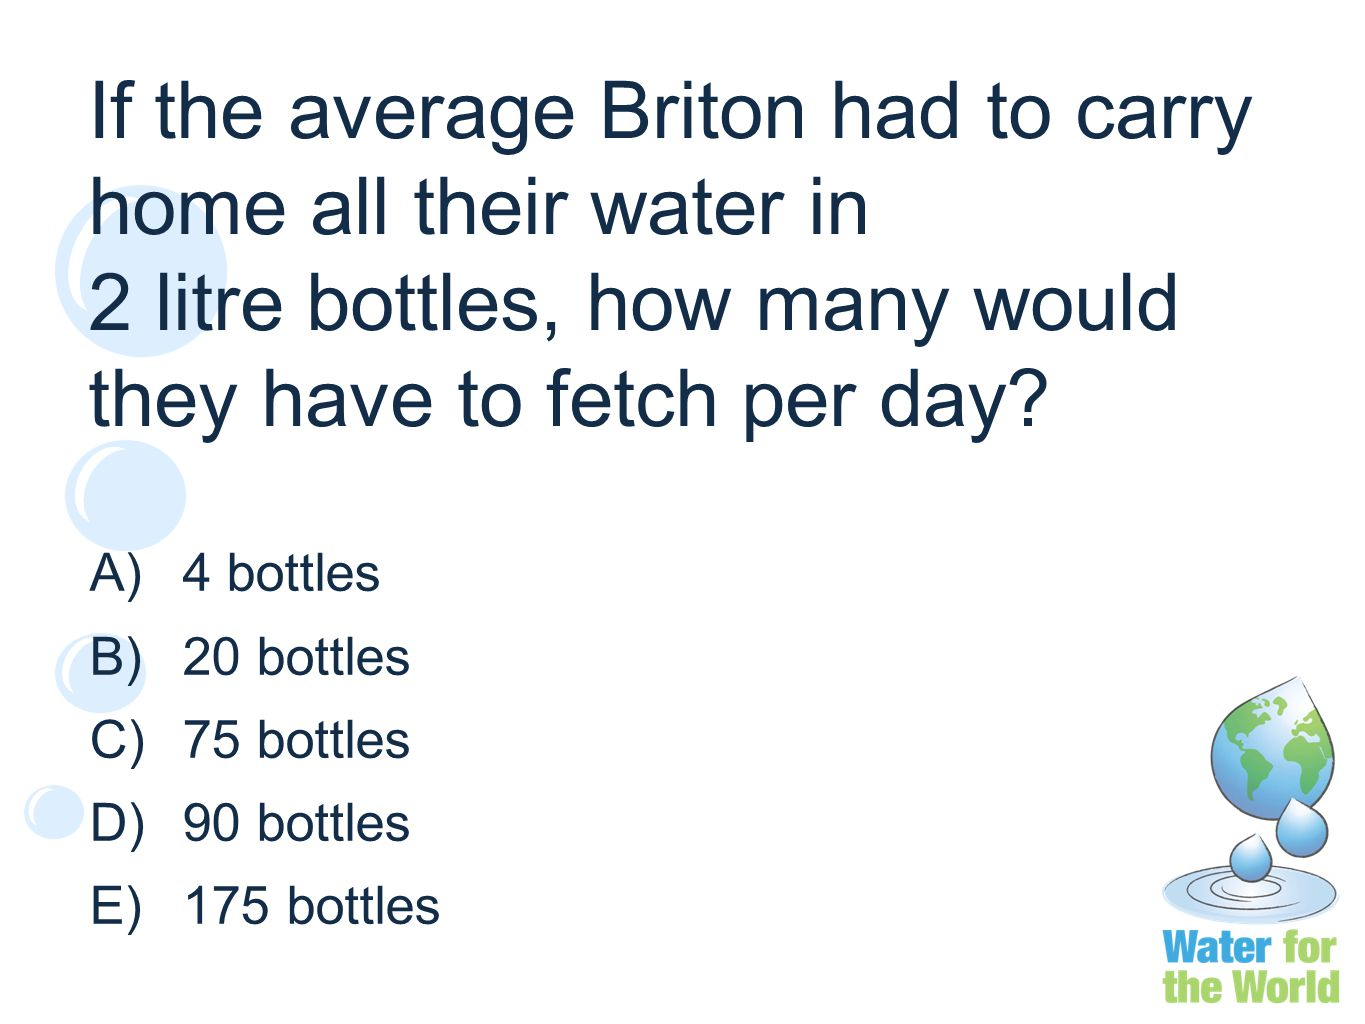 If the average Briton had to carry home all their water in 2 litre bottles, how many would they have to fetch per day.